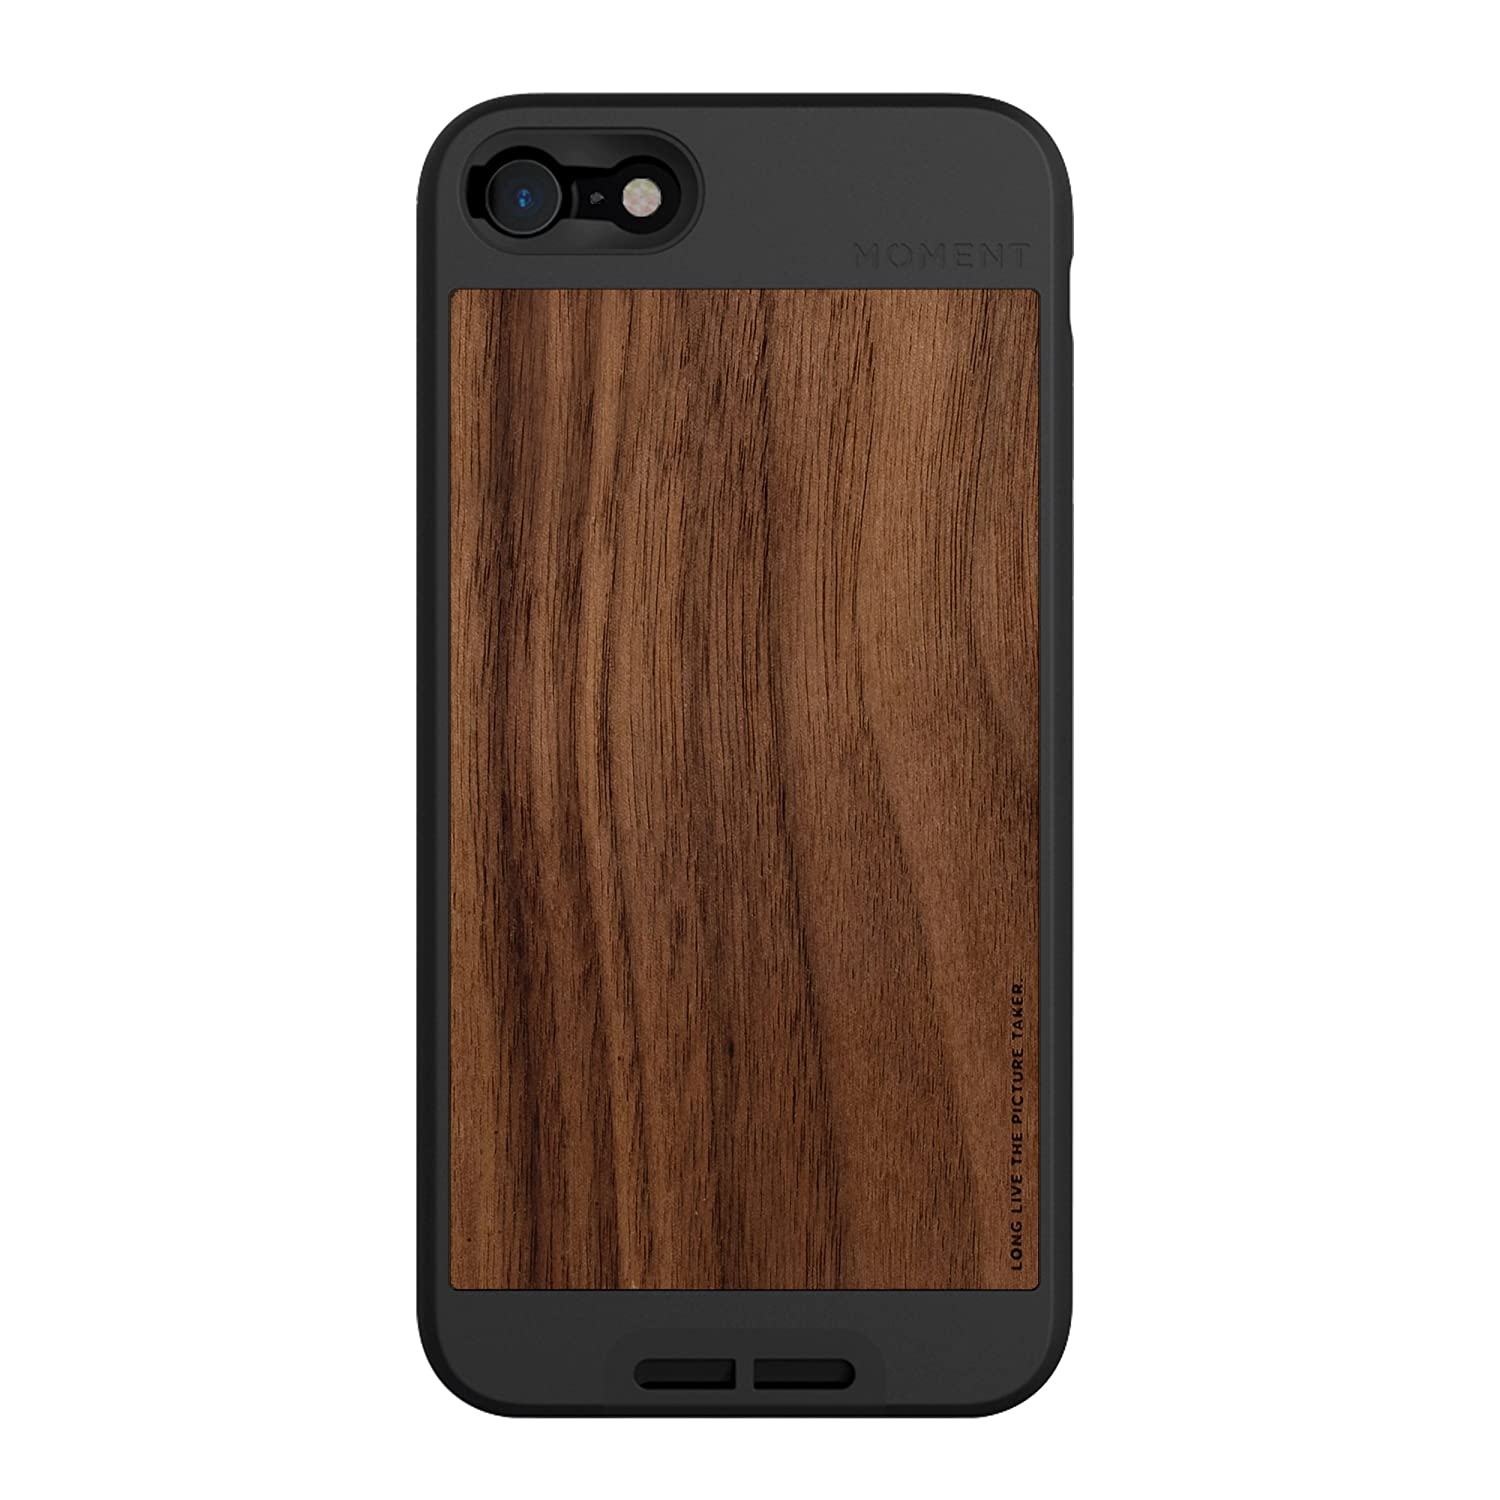 best website bb9c9 c3719 iPhone 6 / 6s Case || Moment Photo Case in Walnut Wood - Thin, Protective,  Wrist Strap Friendly case for Camera Lovers.